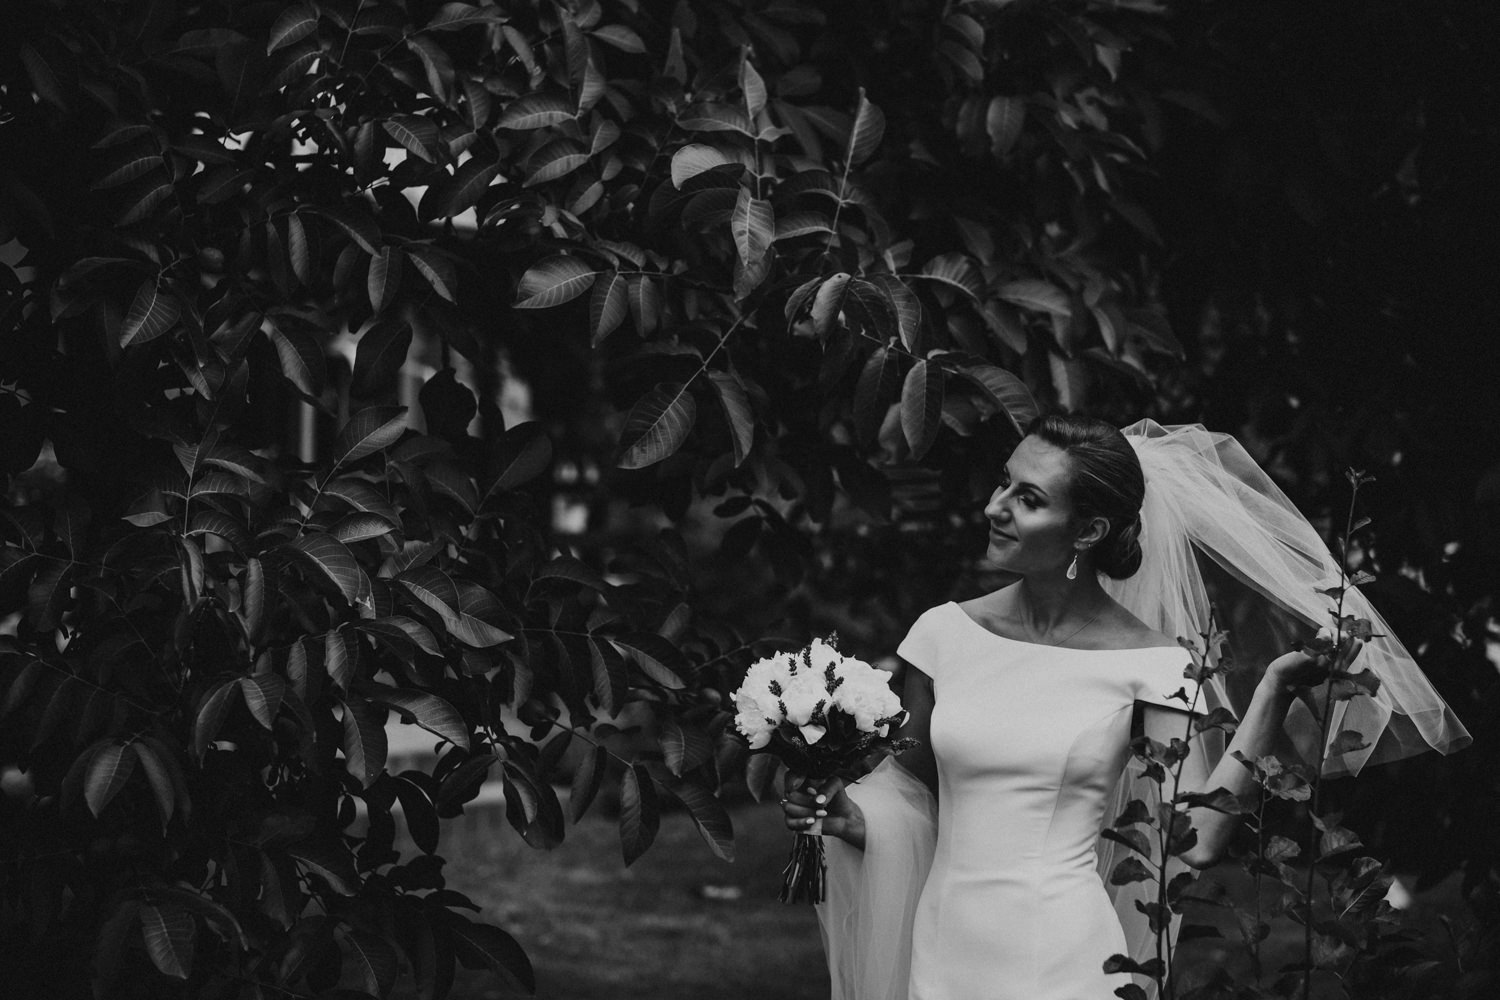 gavin james photography, www.gavinjamesphotography.com, wedding photographer, destination wedding photographer, fuji x series, australian wedding photographer, element fire